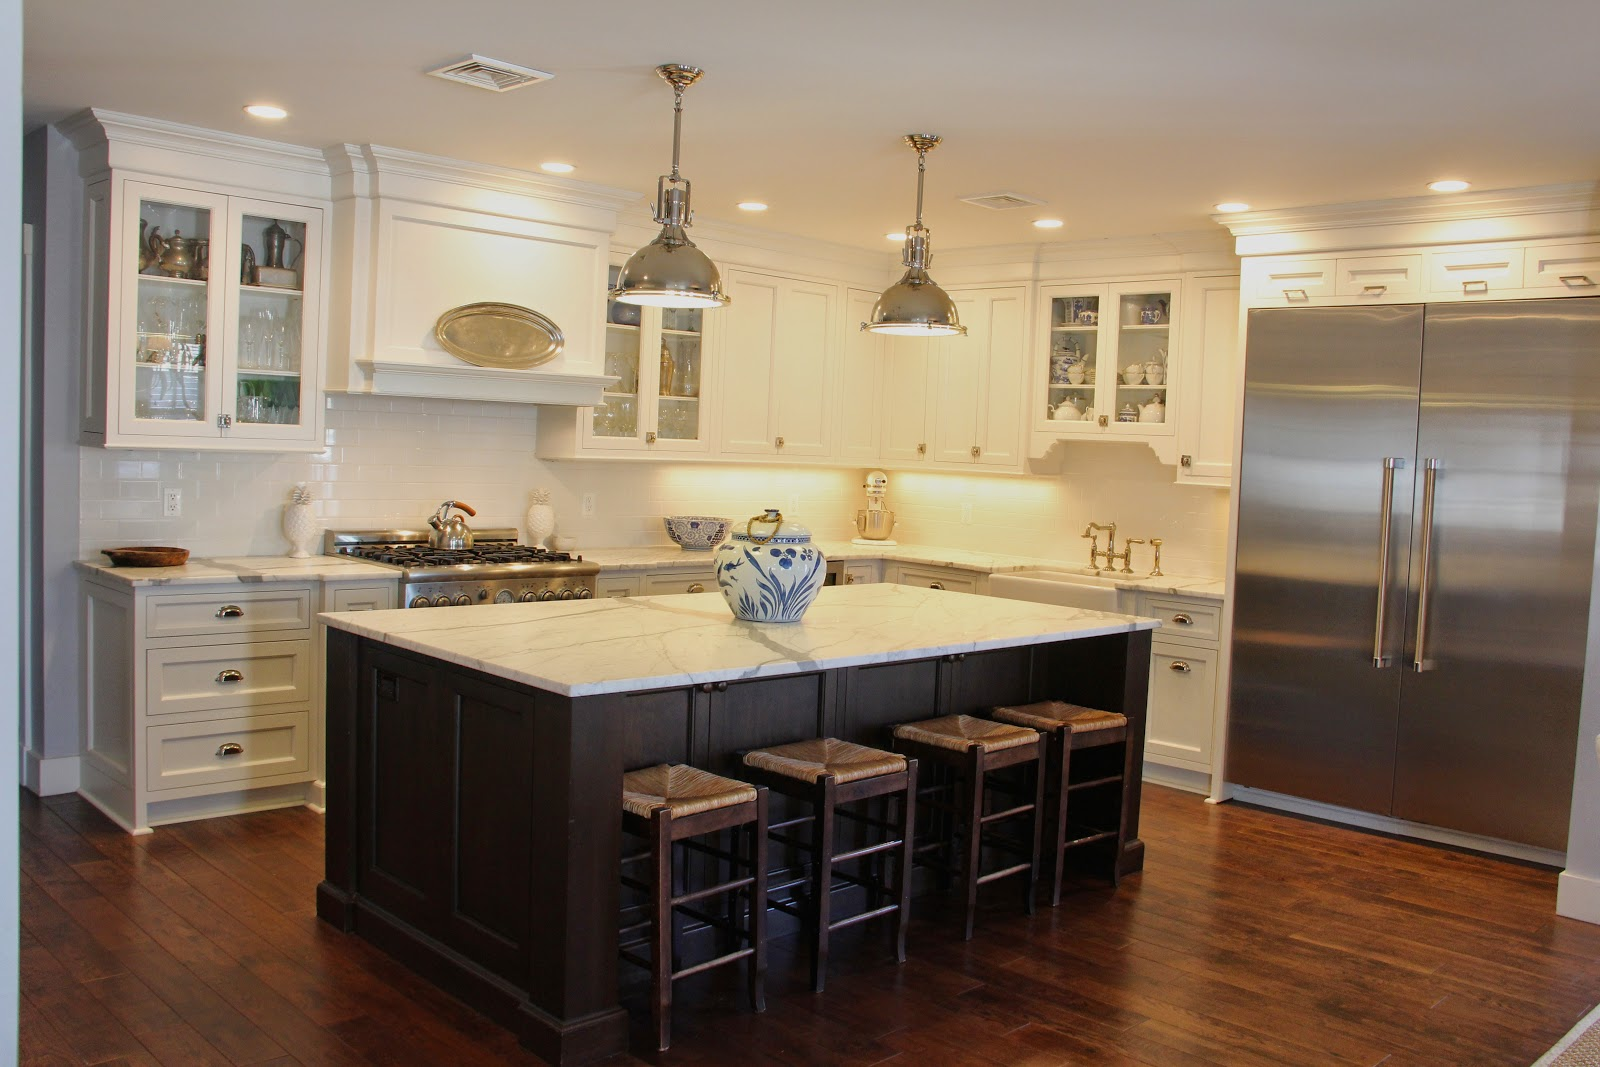 7 Foot Kitchen Island 7 Foot Kitchen Island 7 Foot Kitchen Island Modern House 7 Foot Kitchen